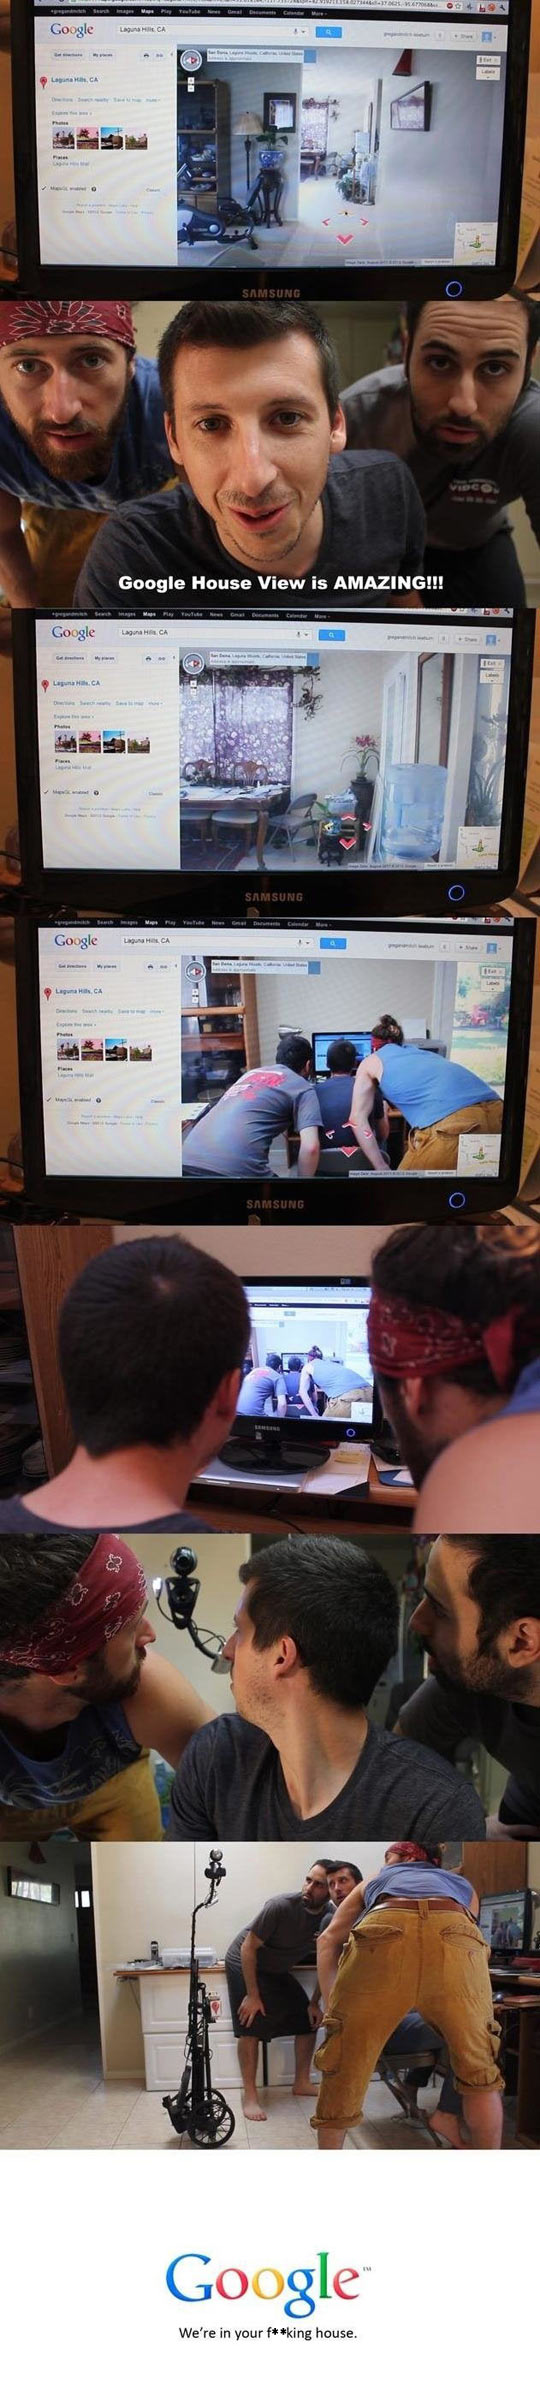 funny-Google-house-view-friends-computer